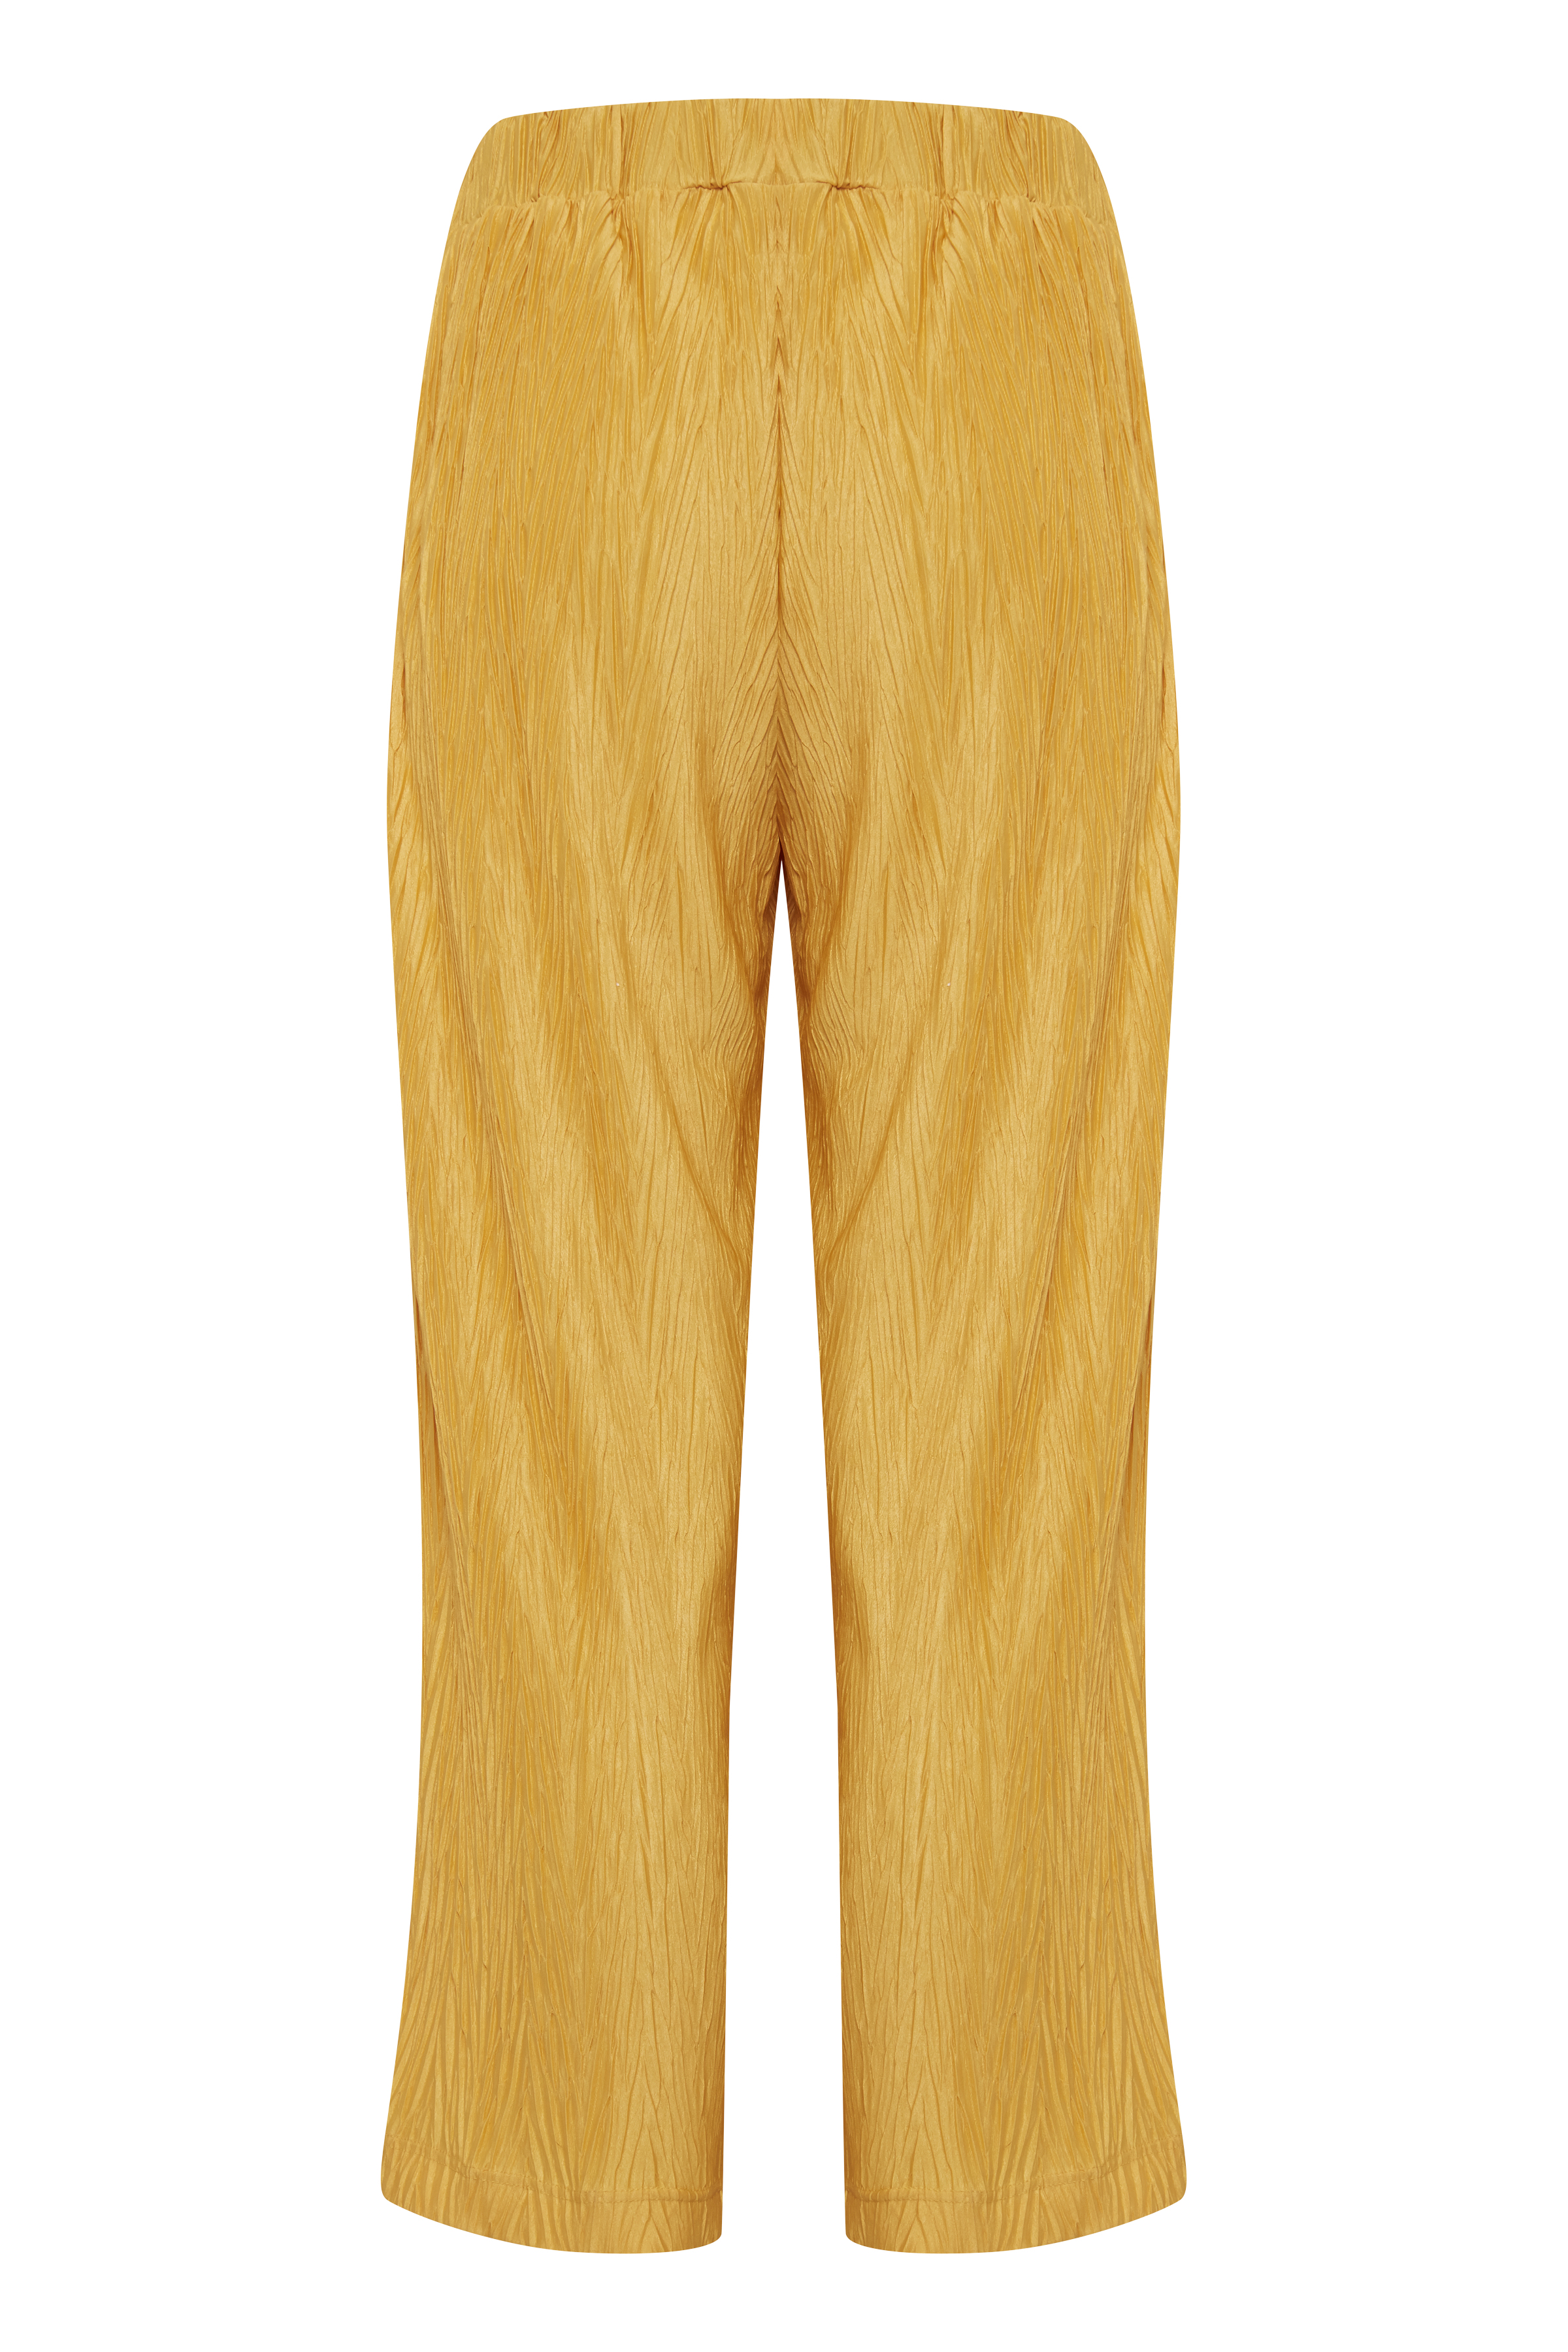 Golden Glow Pants Casual fra b.young – Køb Golden Glow Pants Casual fra str. XS-XXL her